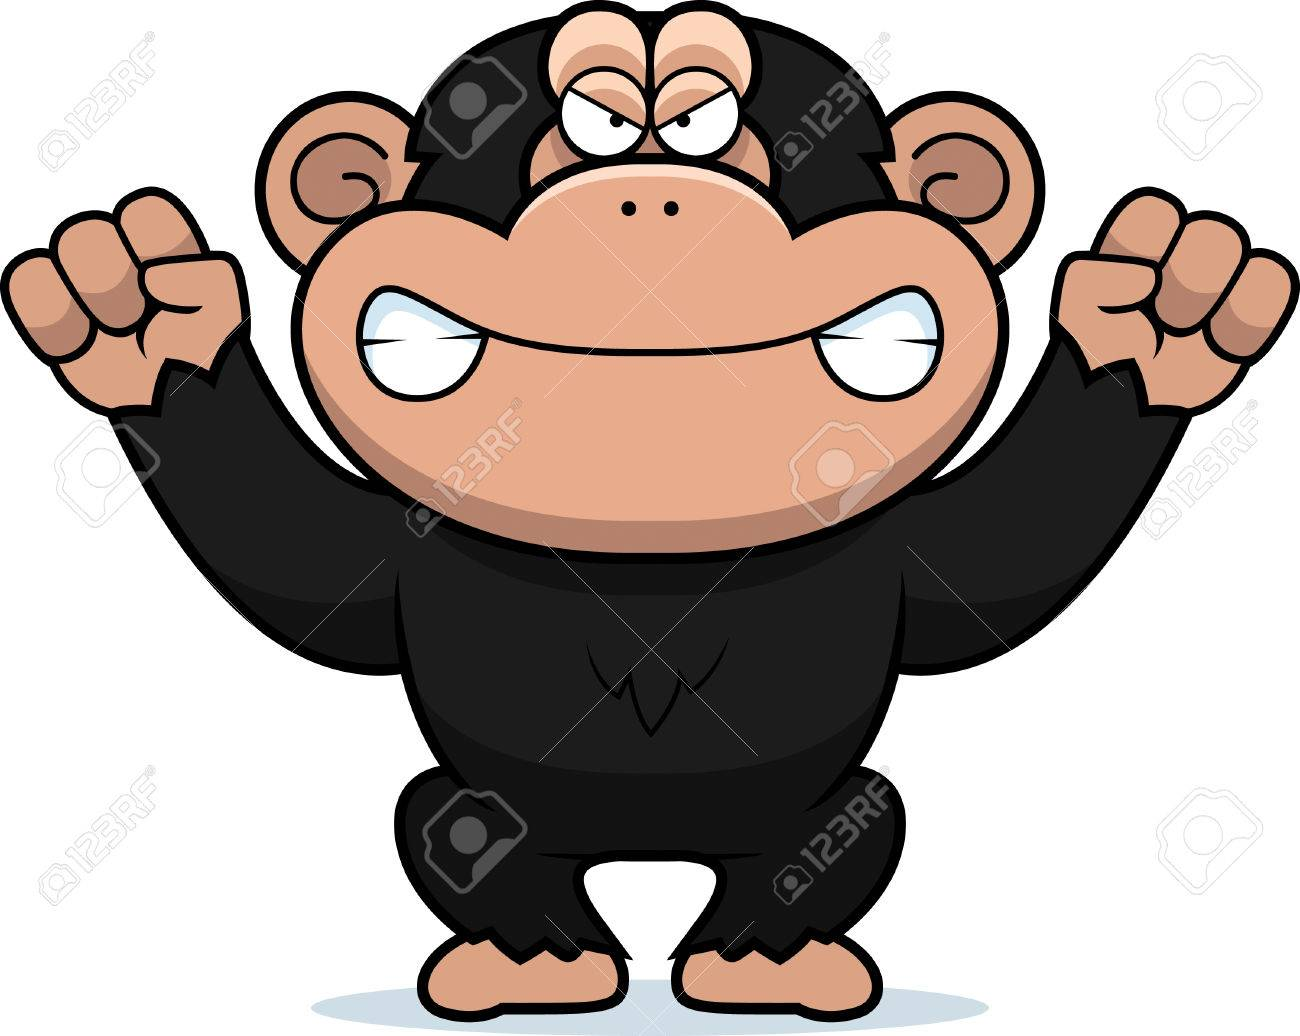 a cartoon illustration of an angry looking chimp royalty free rh 123rf com chimpanzee clipart black and white chimpanzee face clipart